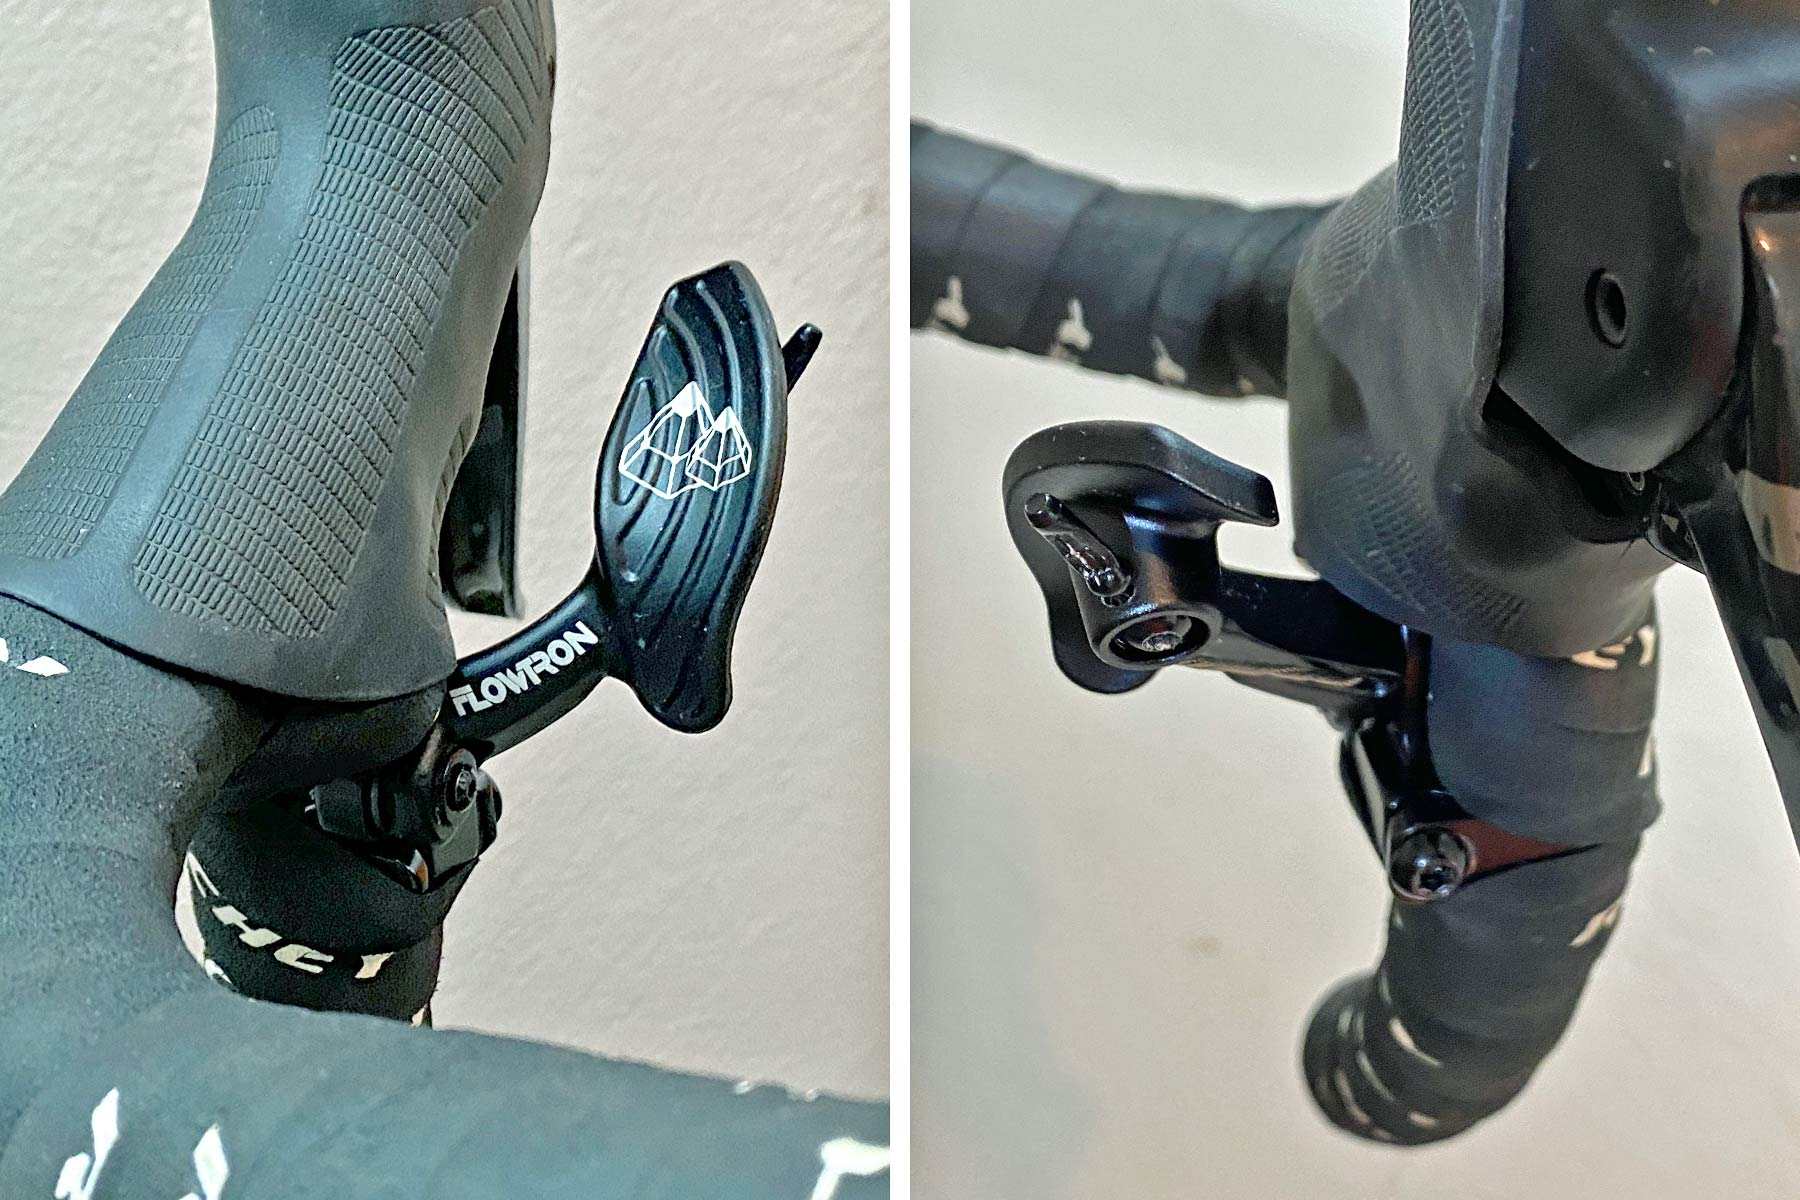 FSA Flowtron AGX gravel dropper post, First Look Review: 27.2mm internally routed dropper seatpost with dropbar remote,remote details